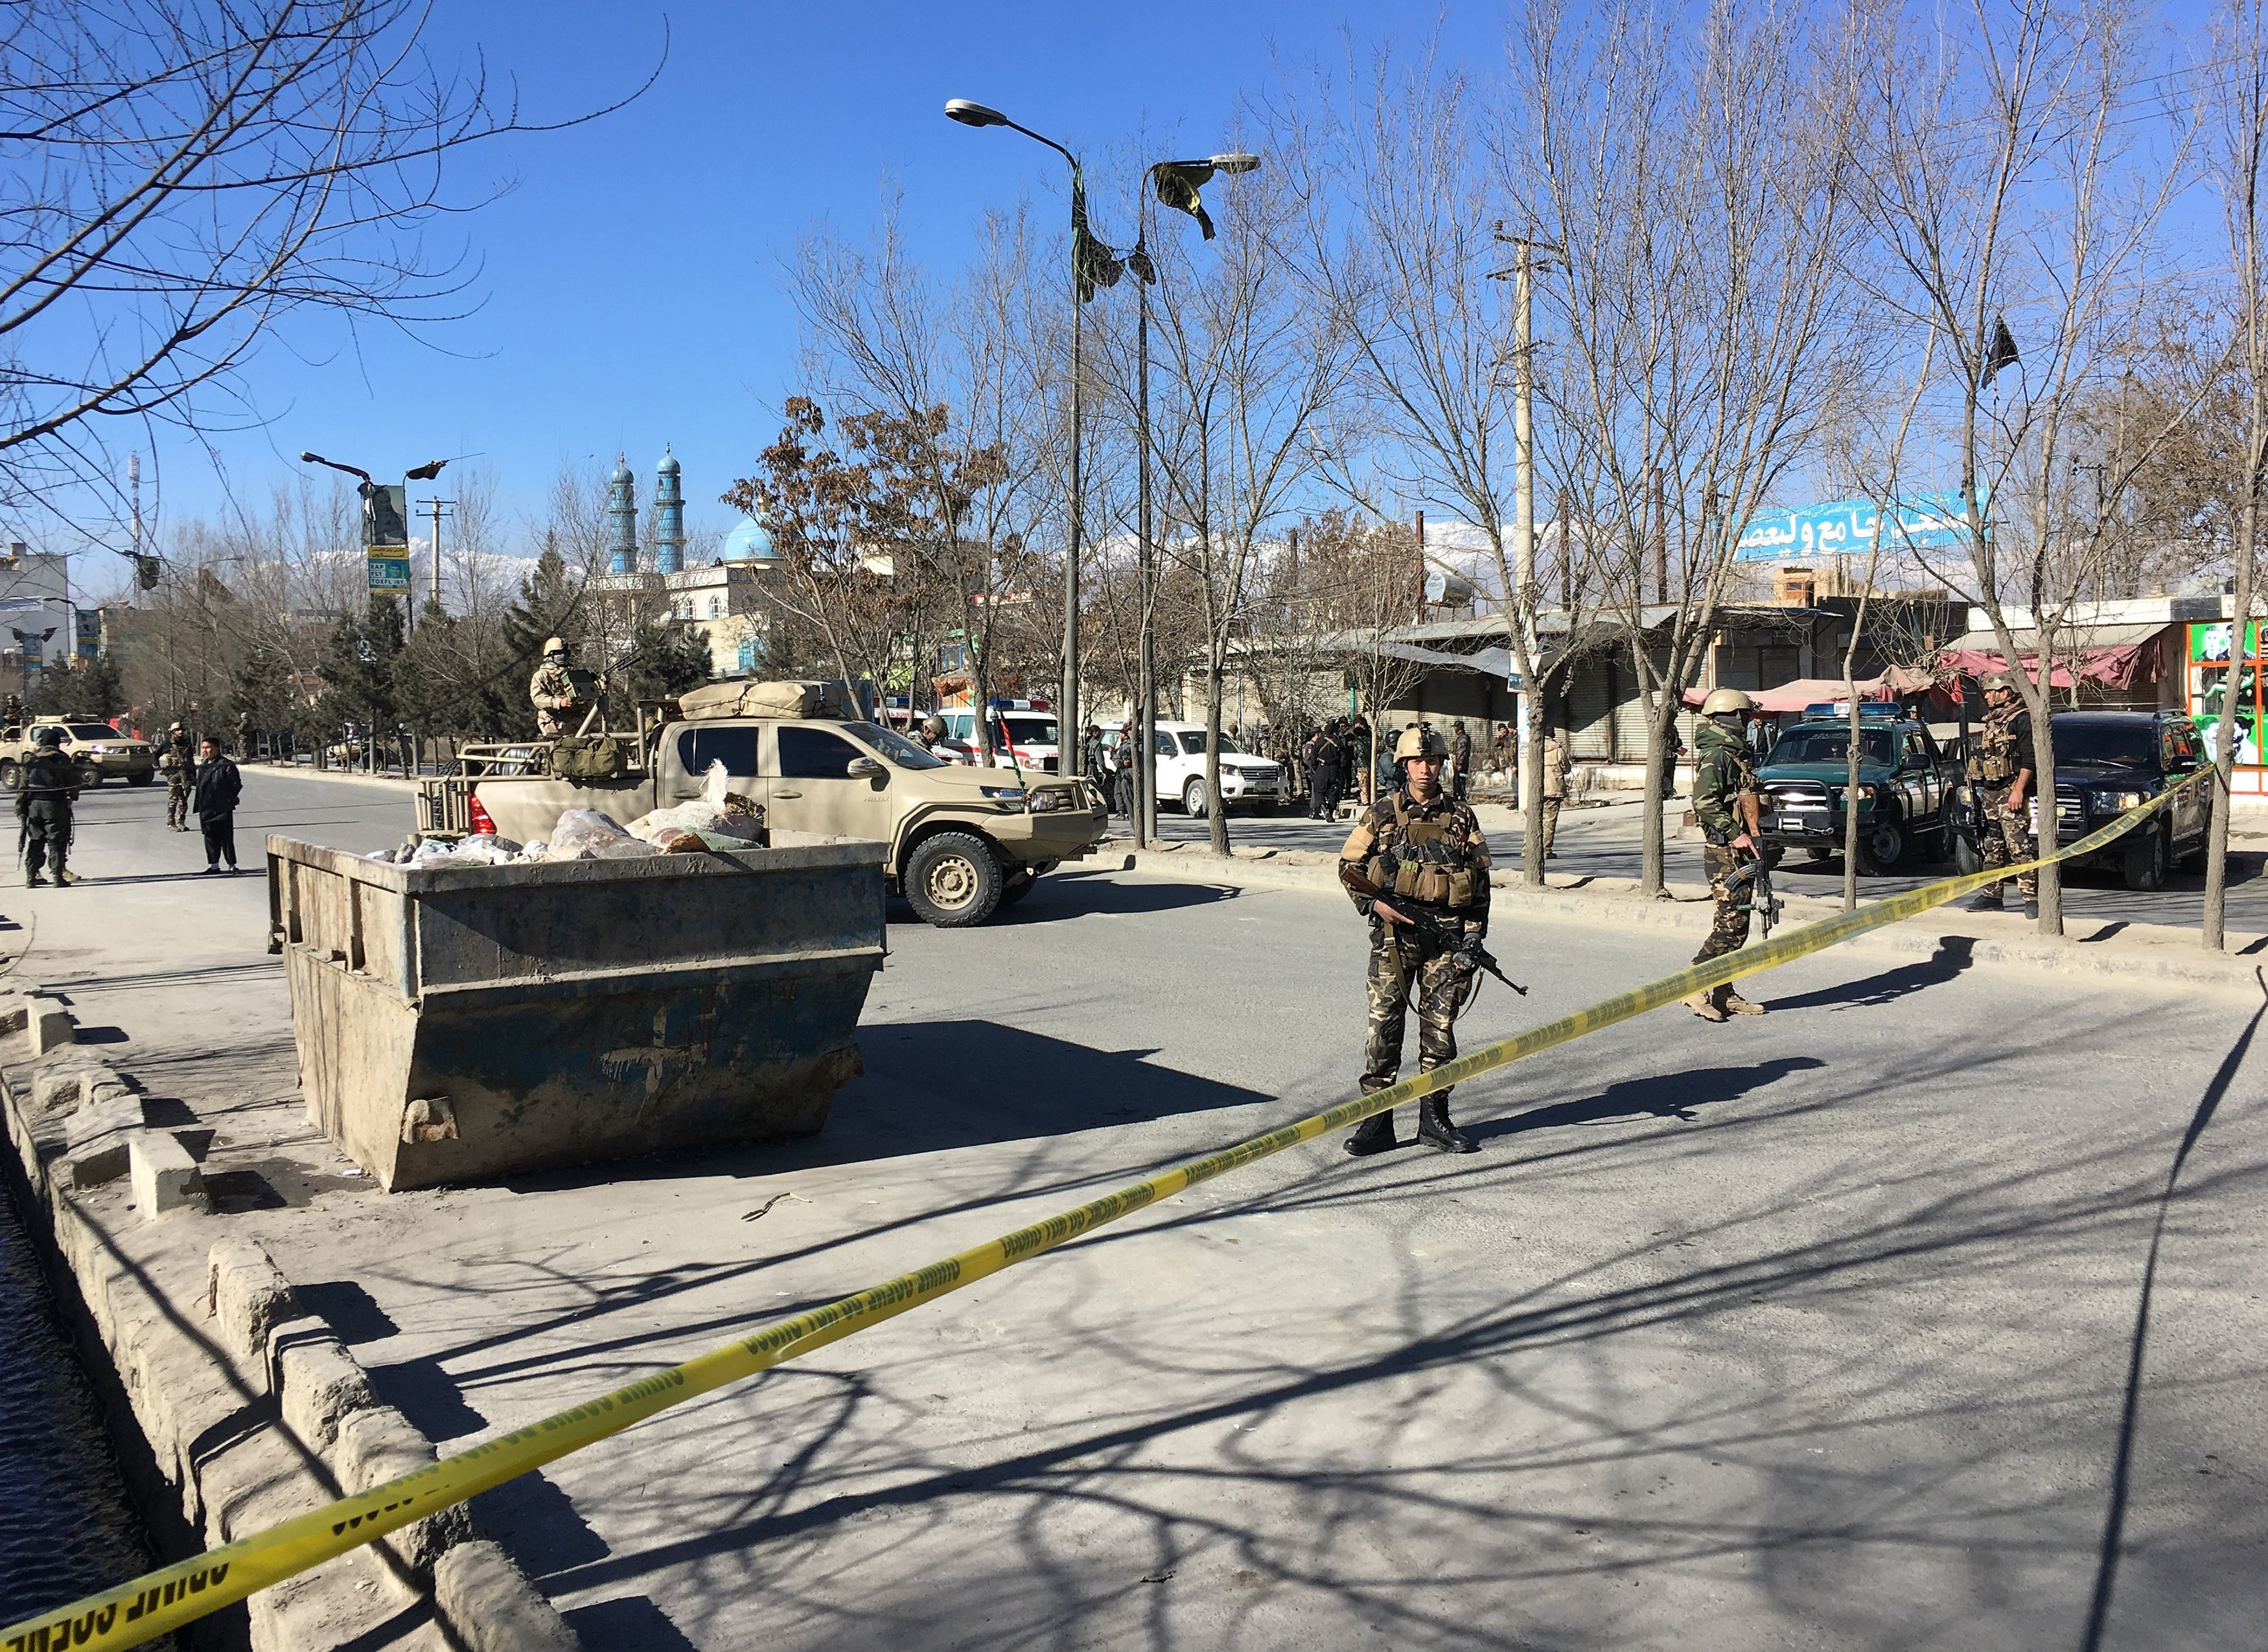 Afghan security forces stand guard near the site of multiple blasts in Kabul on December 28, 2017. At least five people were killed and many others were wounded in multiple blasts near a media outlet and mosque in Kabul on December 28, officials said, in the latest violence to hit the Afghan capital. / AFP PHOTO / Shah MARAI        (Photo credit should read SHAH MARAI/AFP/Getty Images)